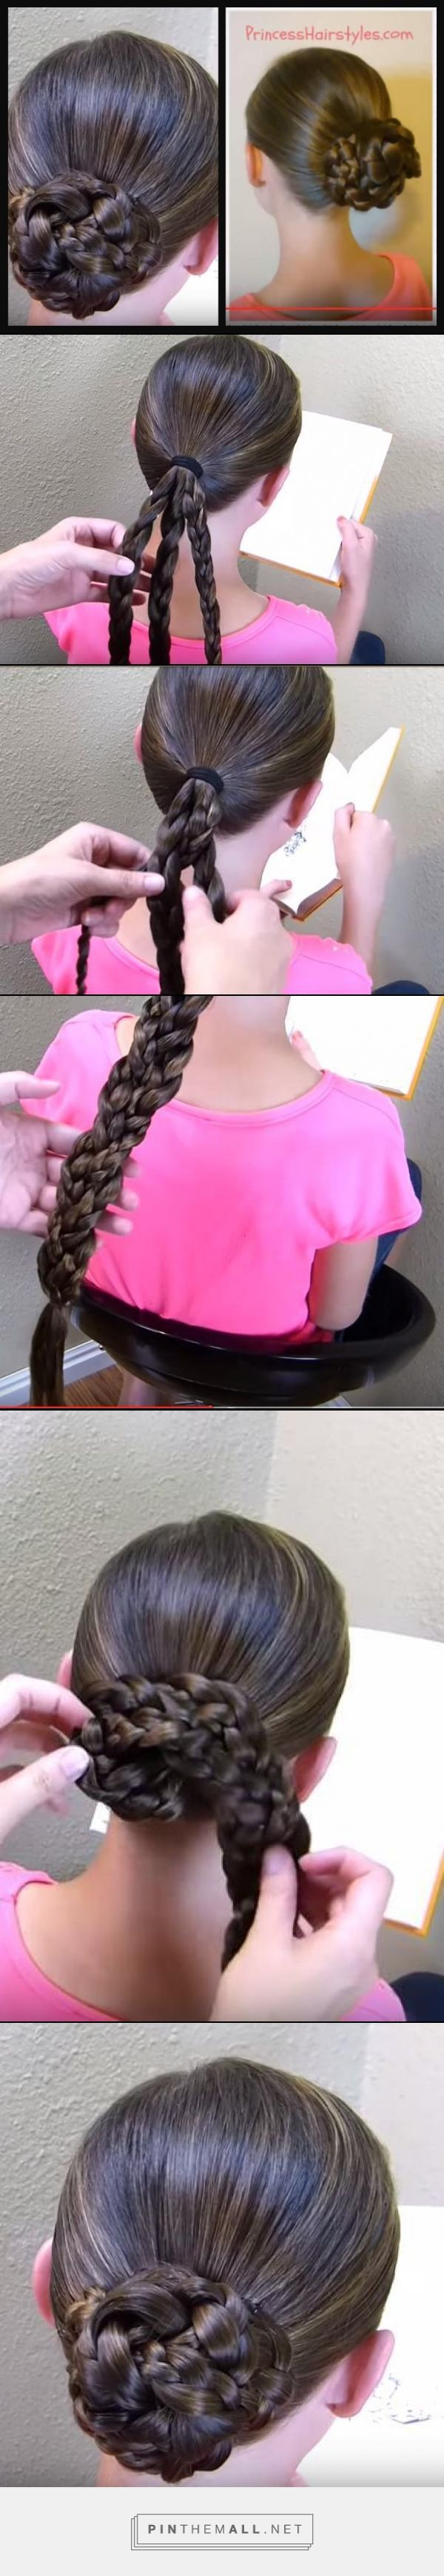 "//Easy Triple Braid Bun, Back To School Basic Hairstyles// using 3 braids braided together :)).. The real ""trick"" to this bun is the way in which the strands are braided together and how the hair is wrapped around the ponytail. You will want to keep things loose for the bun to lay more nicely, especially if your hair is long. #Princess Hairstyles #summer #hairstyle #school #تسريحة_سهلة تسريحة كعكة مضفرة -"